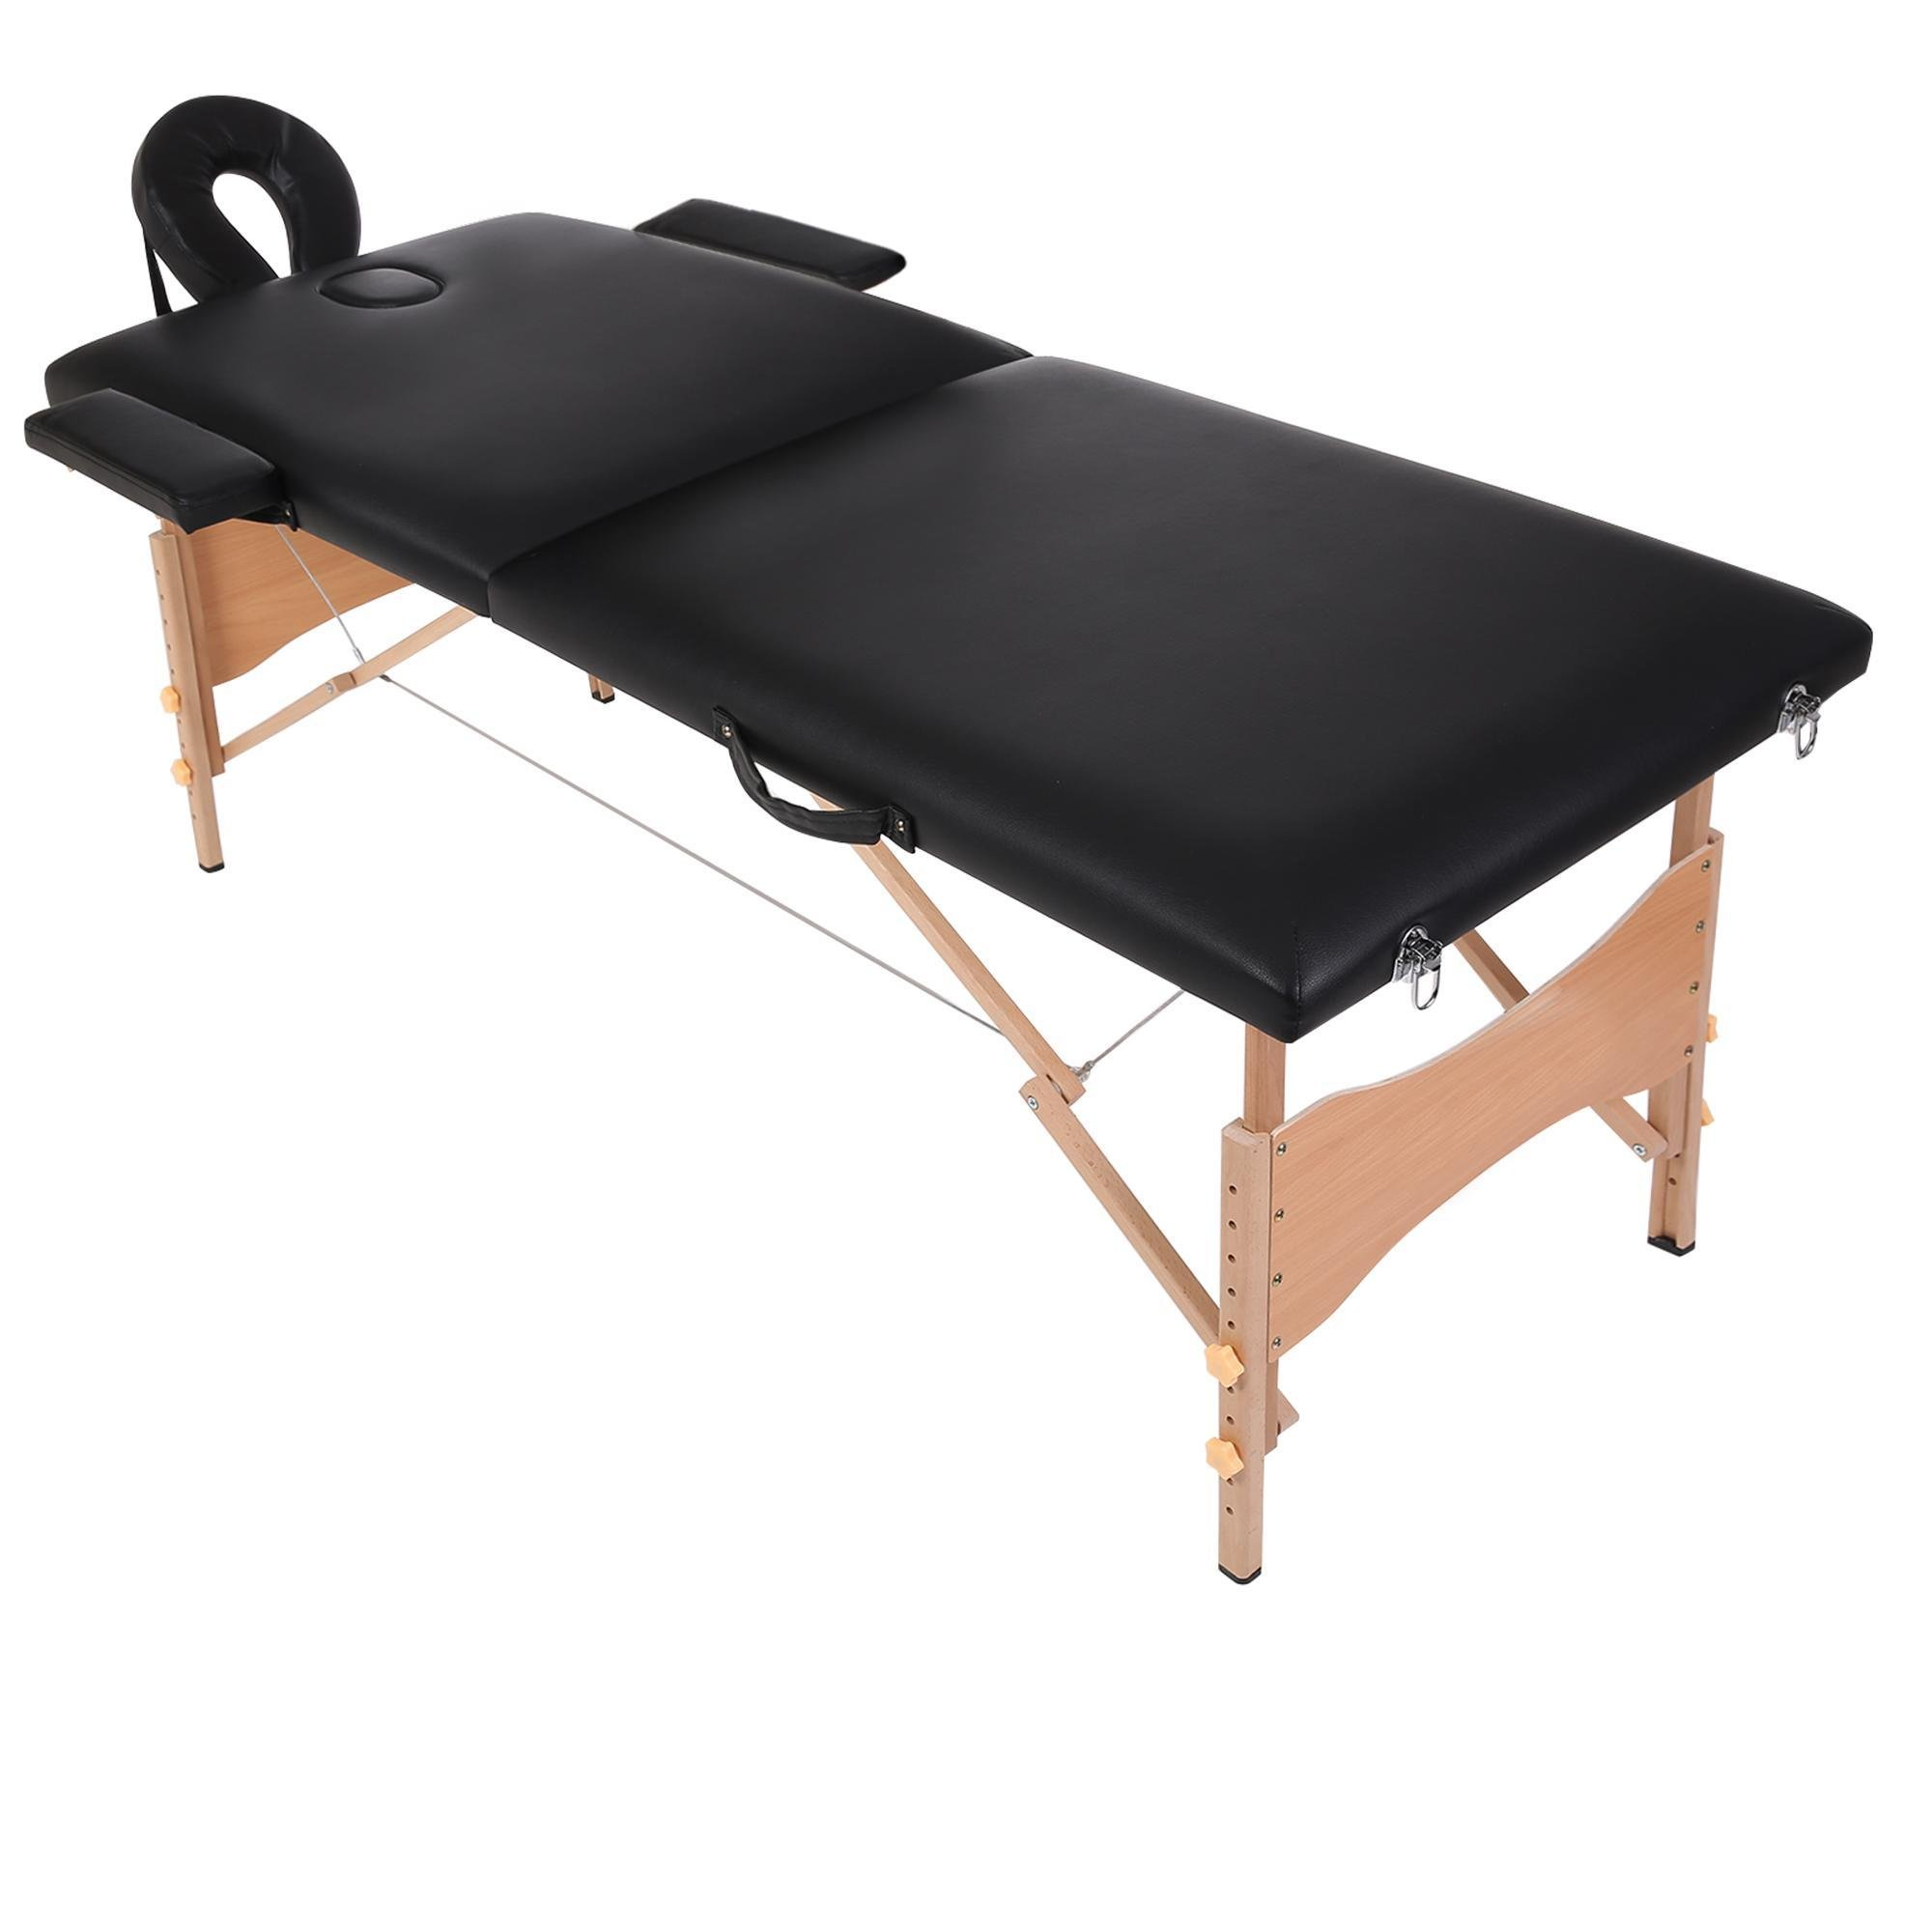 Garain Portable Synthetic Leather Massage Table Comfort Folding Pad Bed for Facial Spa Foot Massage